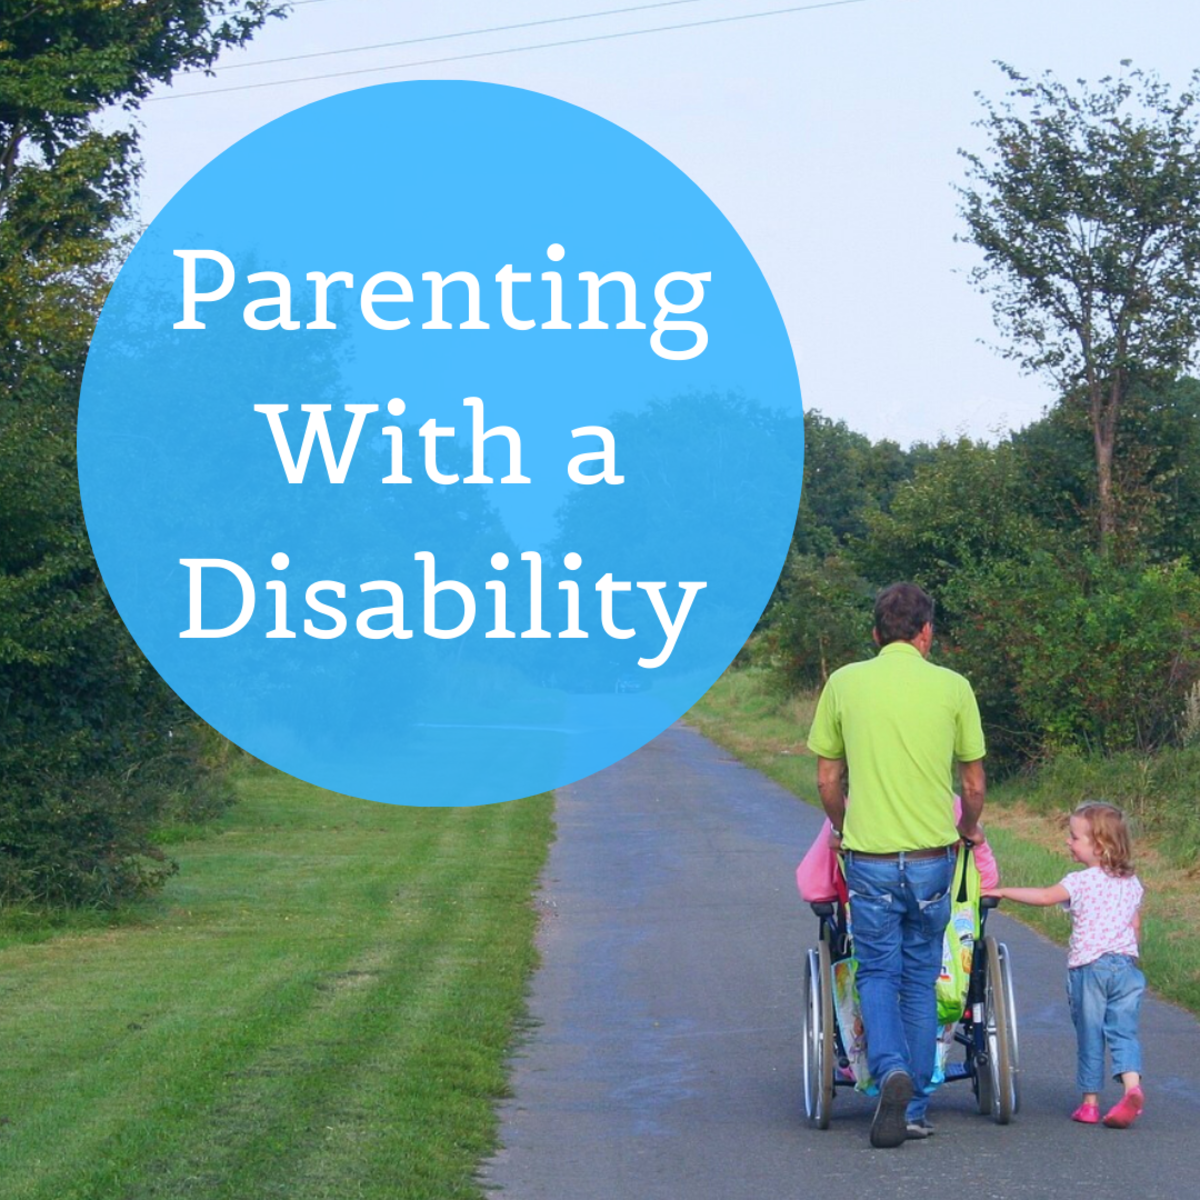 Find some advice for being a parent while having a disability, from setting up a support system to focusing on the fun activities you can share with your child.